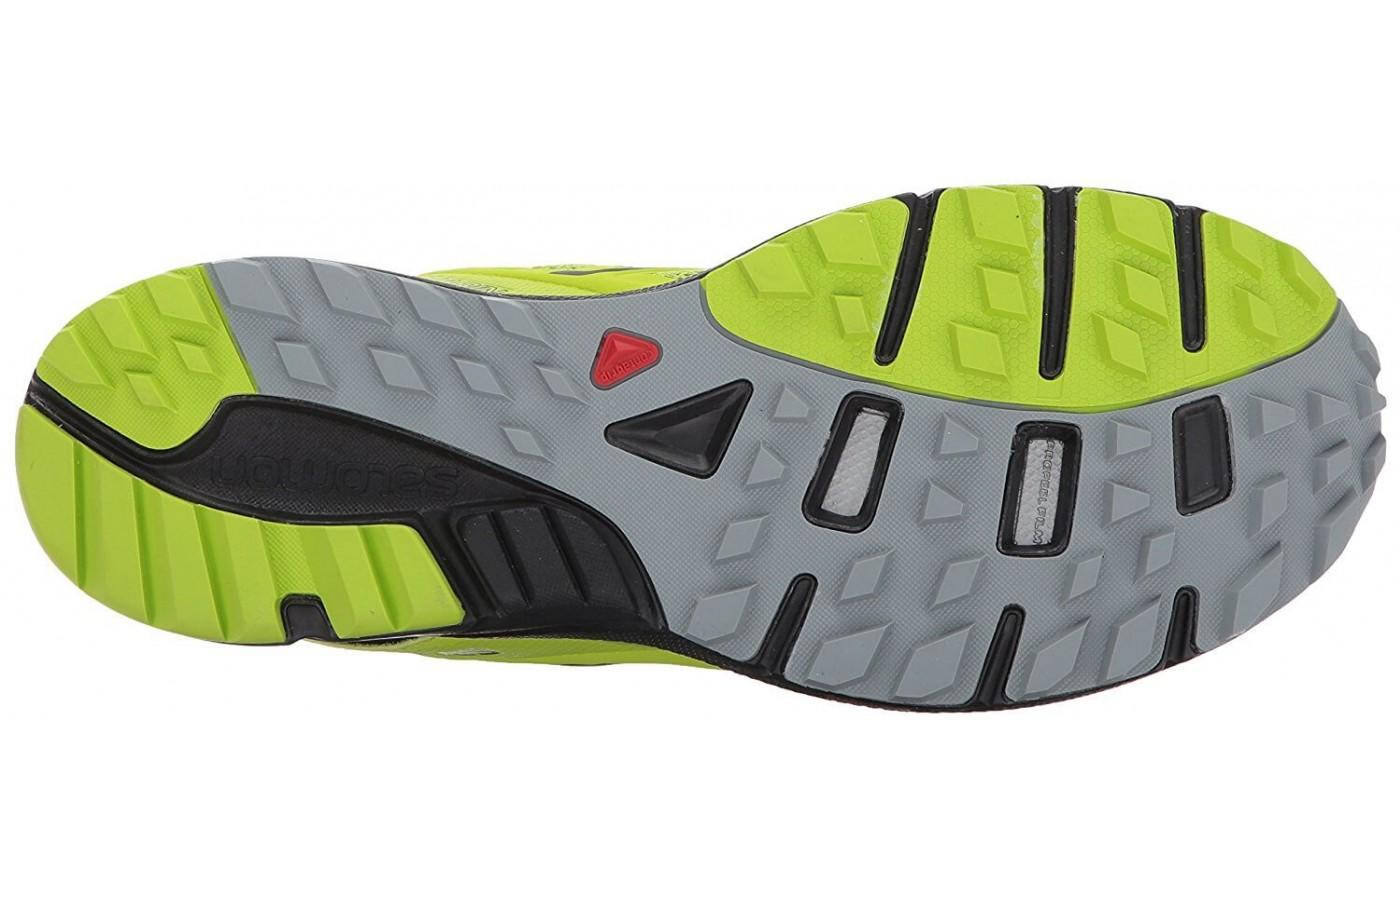 The outsole features an aggressive lug system of added traction